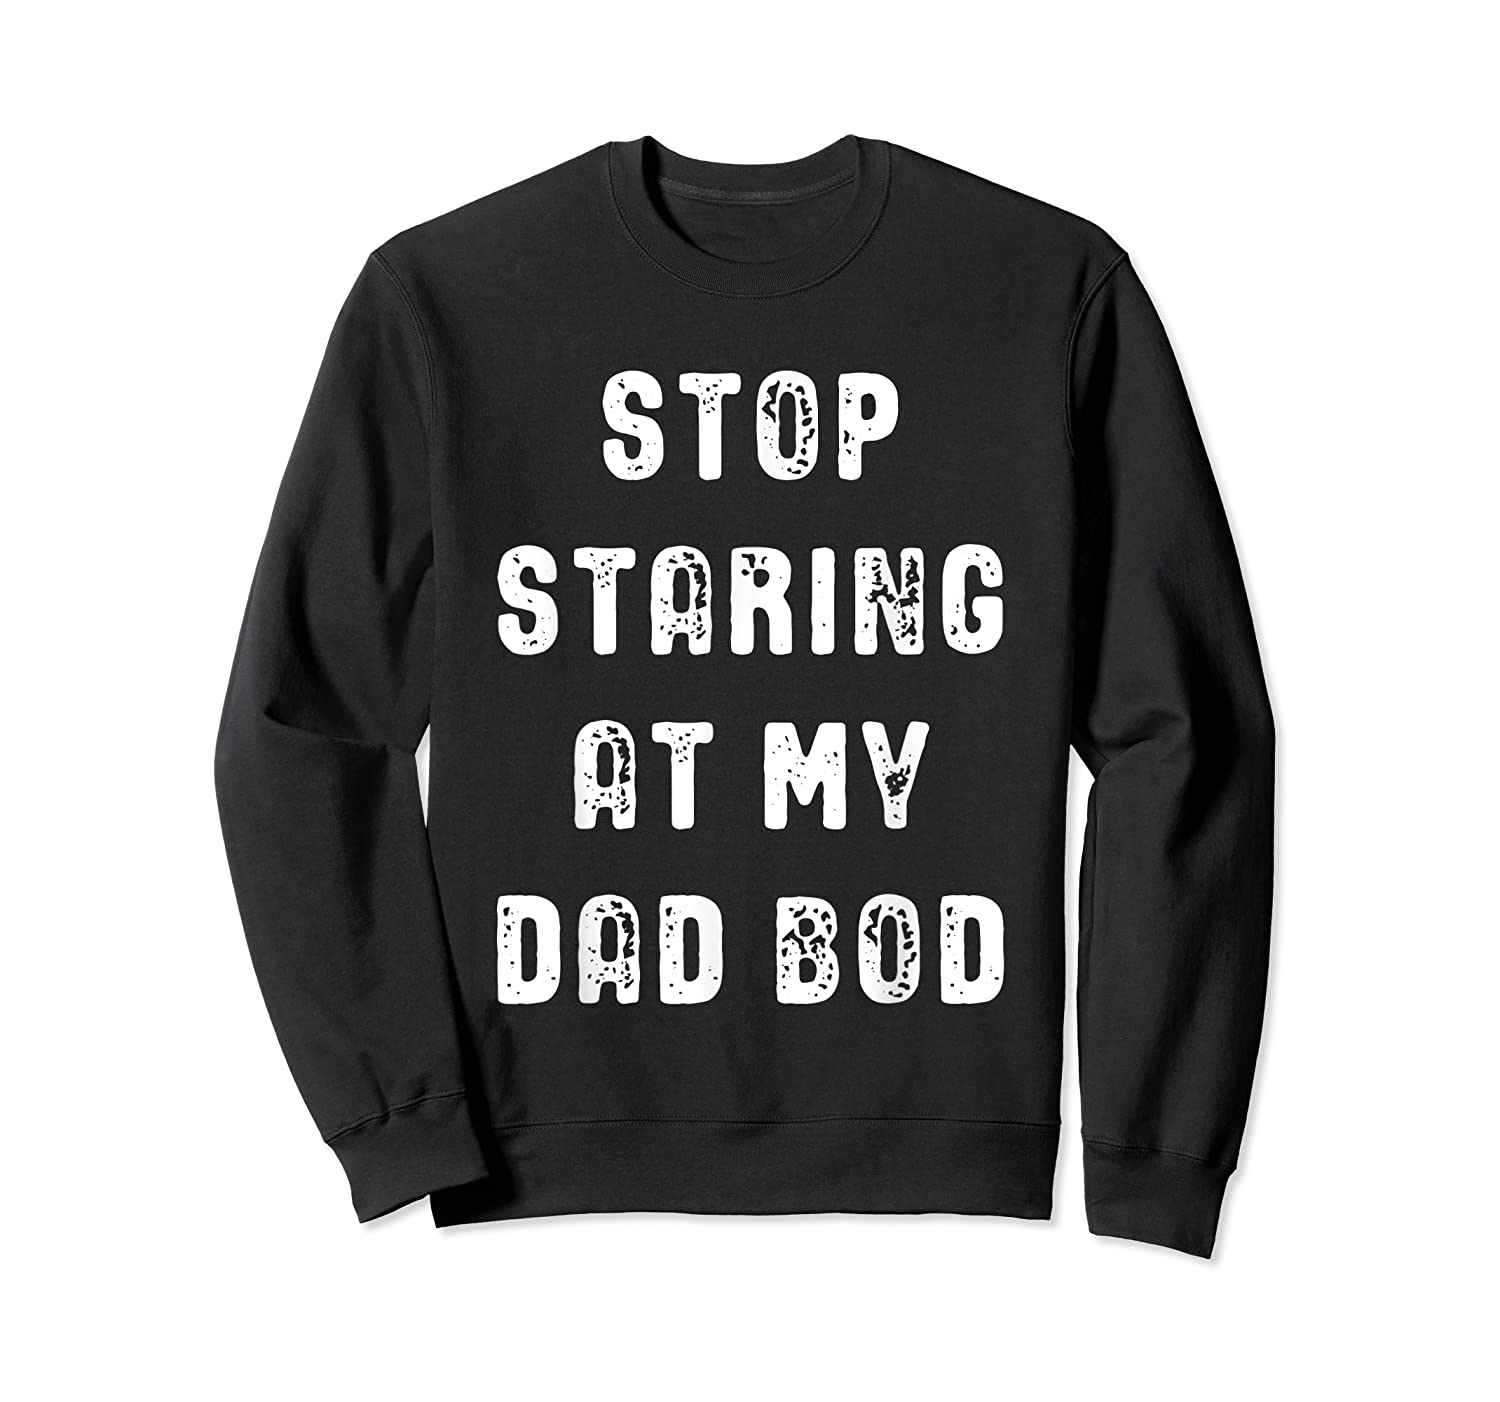 Stop Staring At My Dad Bod Father S Day T Shirt Crewneck Sweater